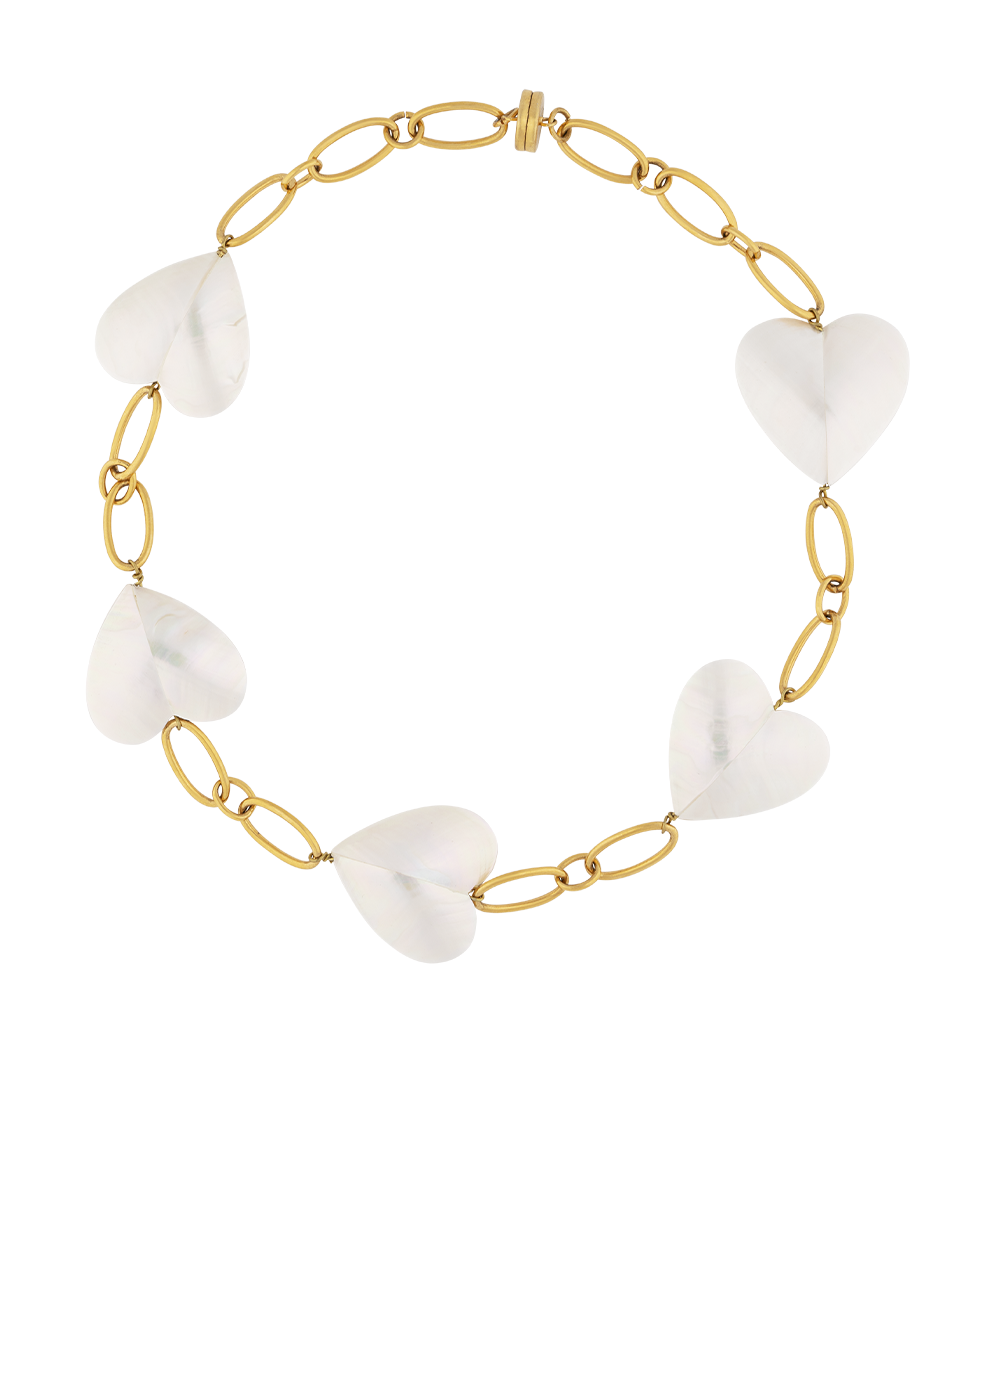 Lover necklace by Timeless Pearly